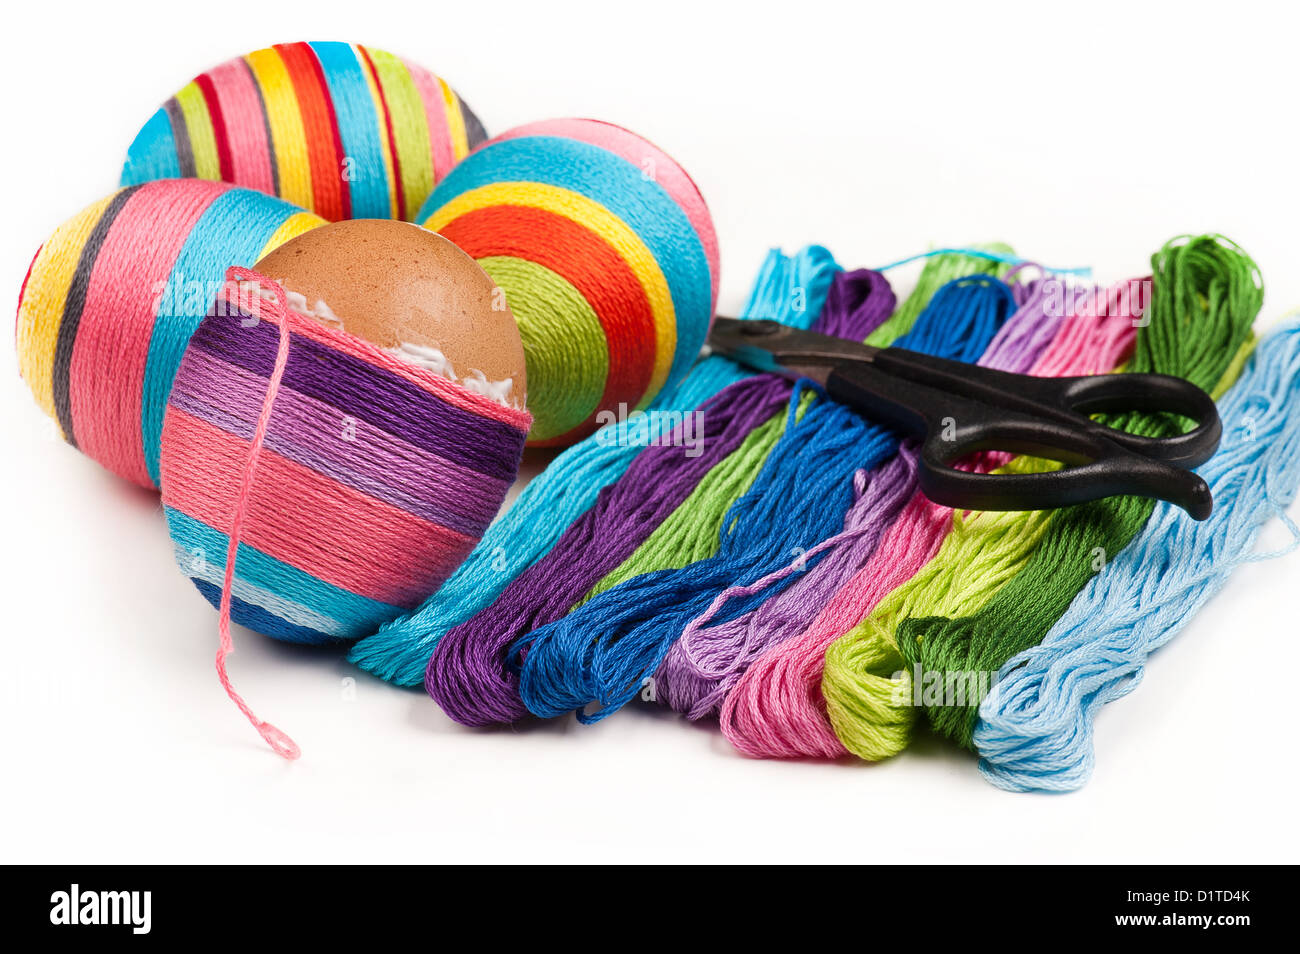 Do it yourself easter eggs decoration stock photo 52782931 alamy do it yourself easter eggs decoration solutioingenieria Choice Image